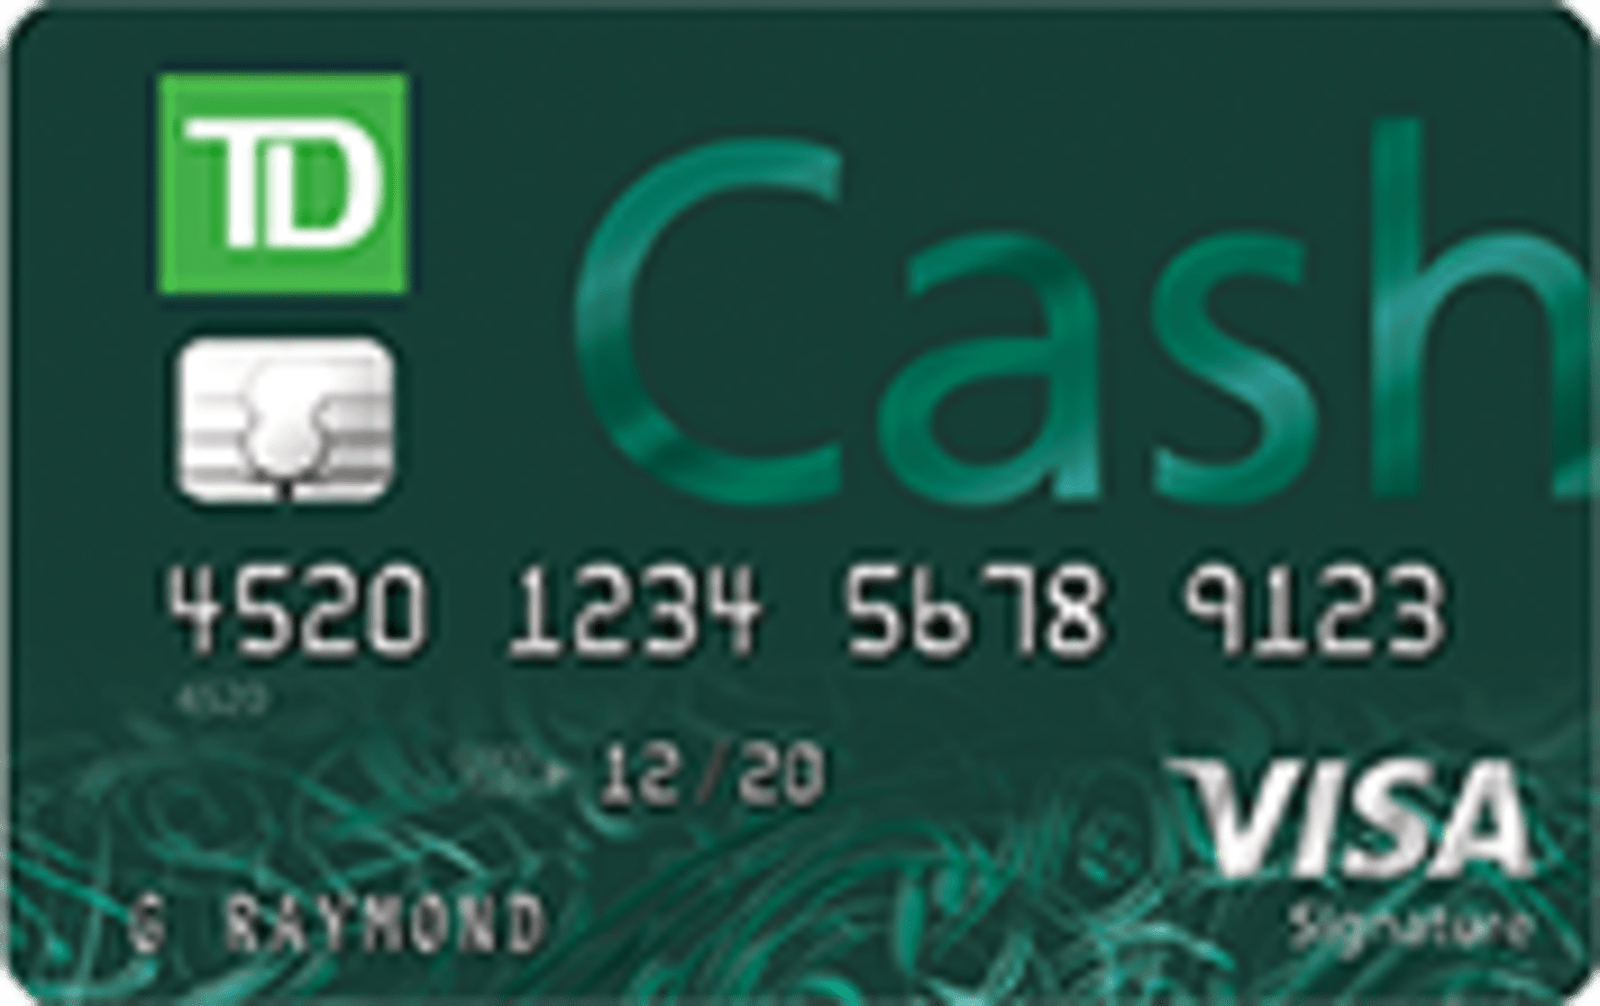 TD Cash Credit Card: Should You Apply? | Credit Card Review